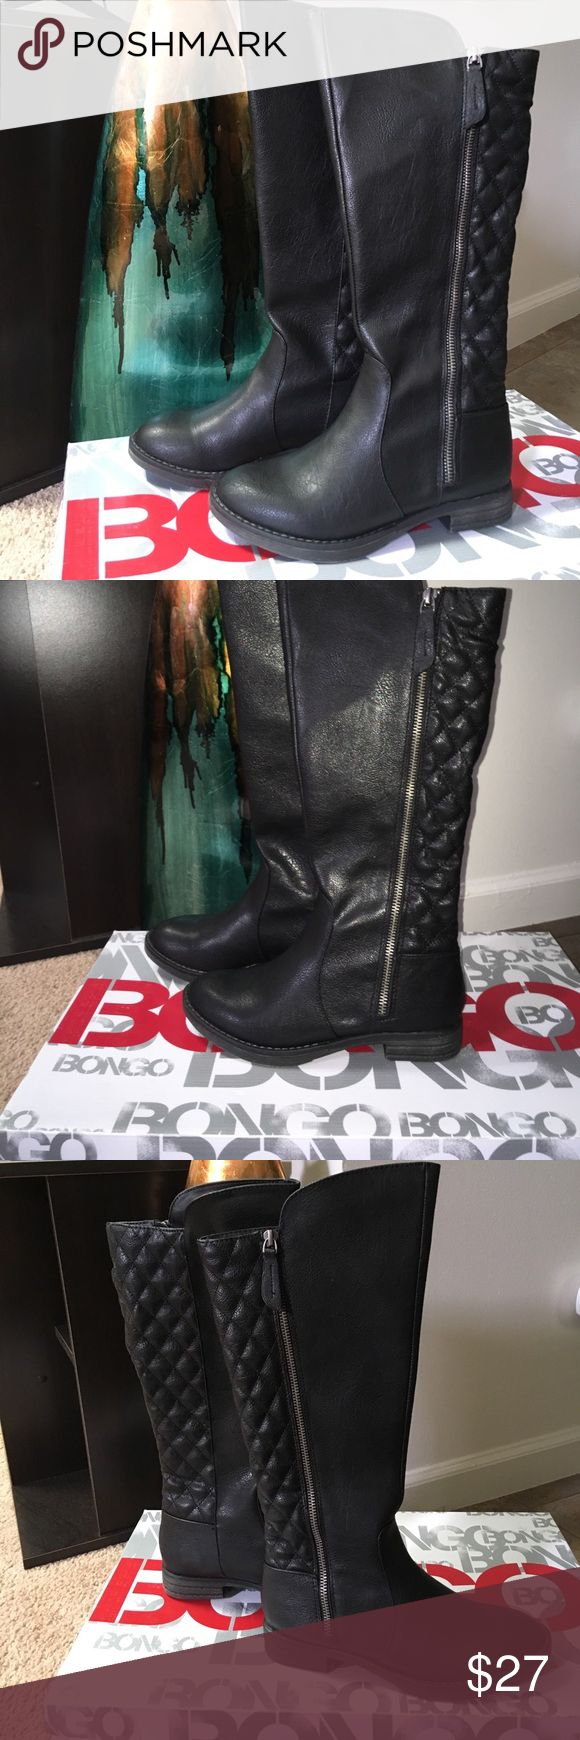 """BONGO """"Bailey"""" quilted black boots NIB 5.5M BONGO black knee high boots. Ladies shoe size 5.5M """"Bailey"""". Lightly textured faux leather look with quilted back panel, side zipper, round tapered toe, 1"""" rubber faux wood look heel. Pewter zipper with 2"""" pull tabs. New with tags on original box. Box has slight signs of storage and sticker removed. Inner boot is lined. BONGO Shoes Winter & Rain Boots"""